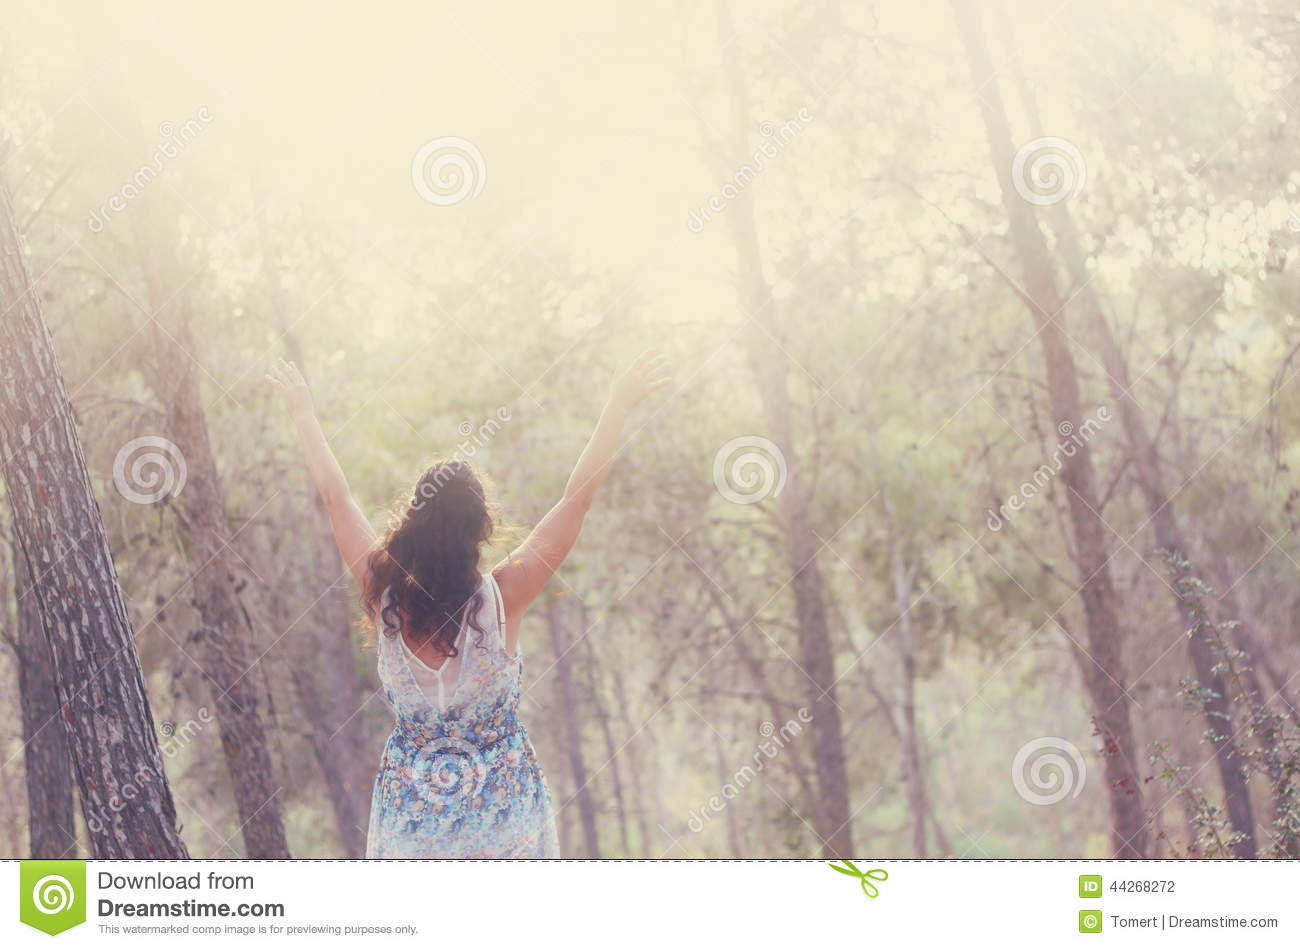 Surreal Photo Of Young Woman Standing In Forest. Image Is ...